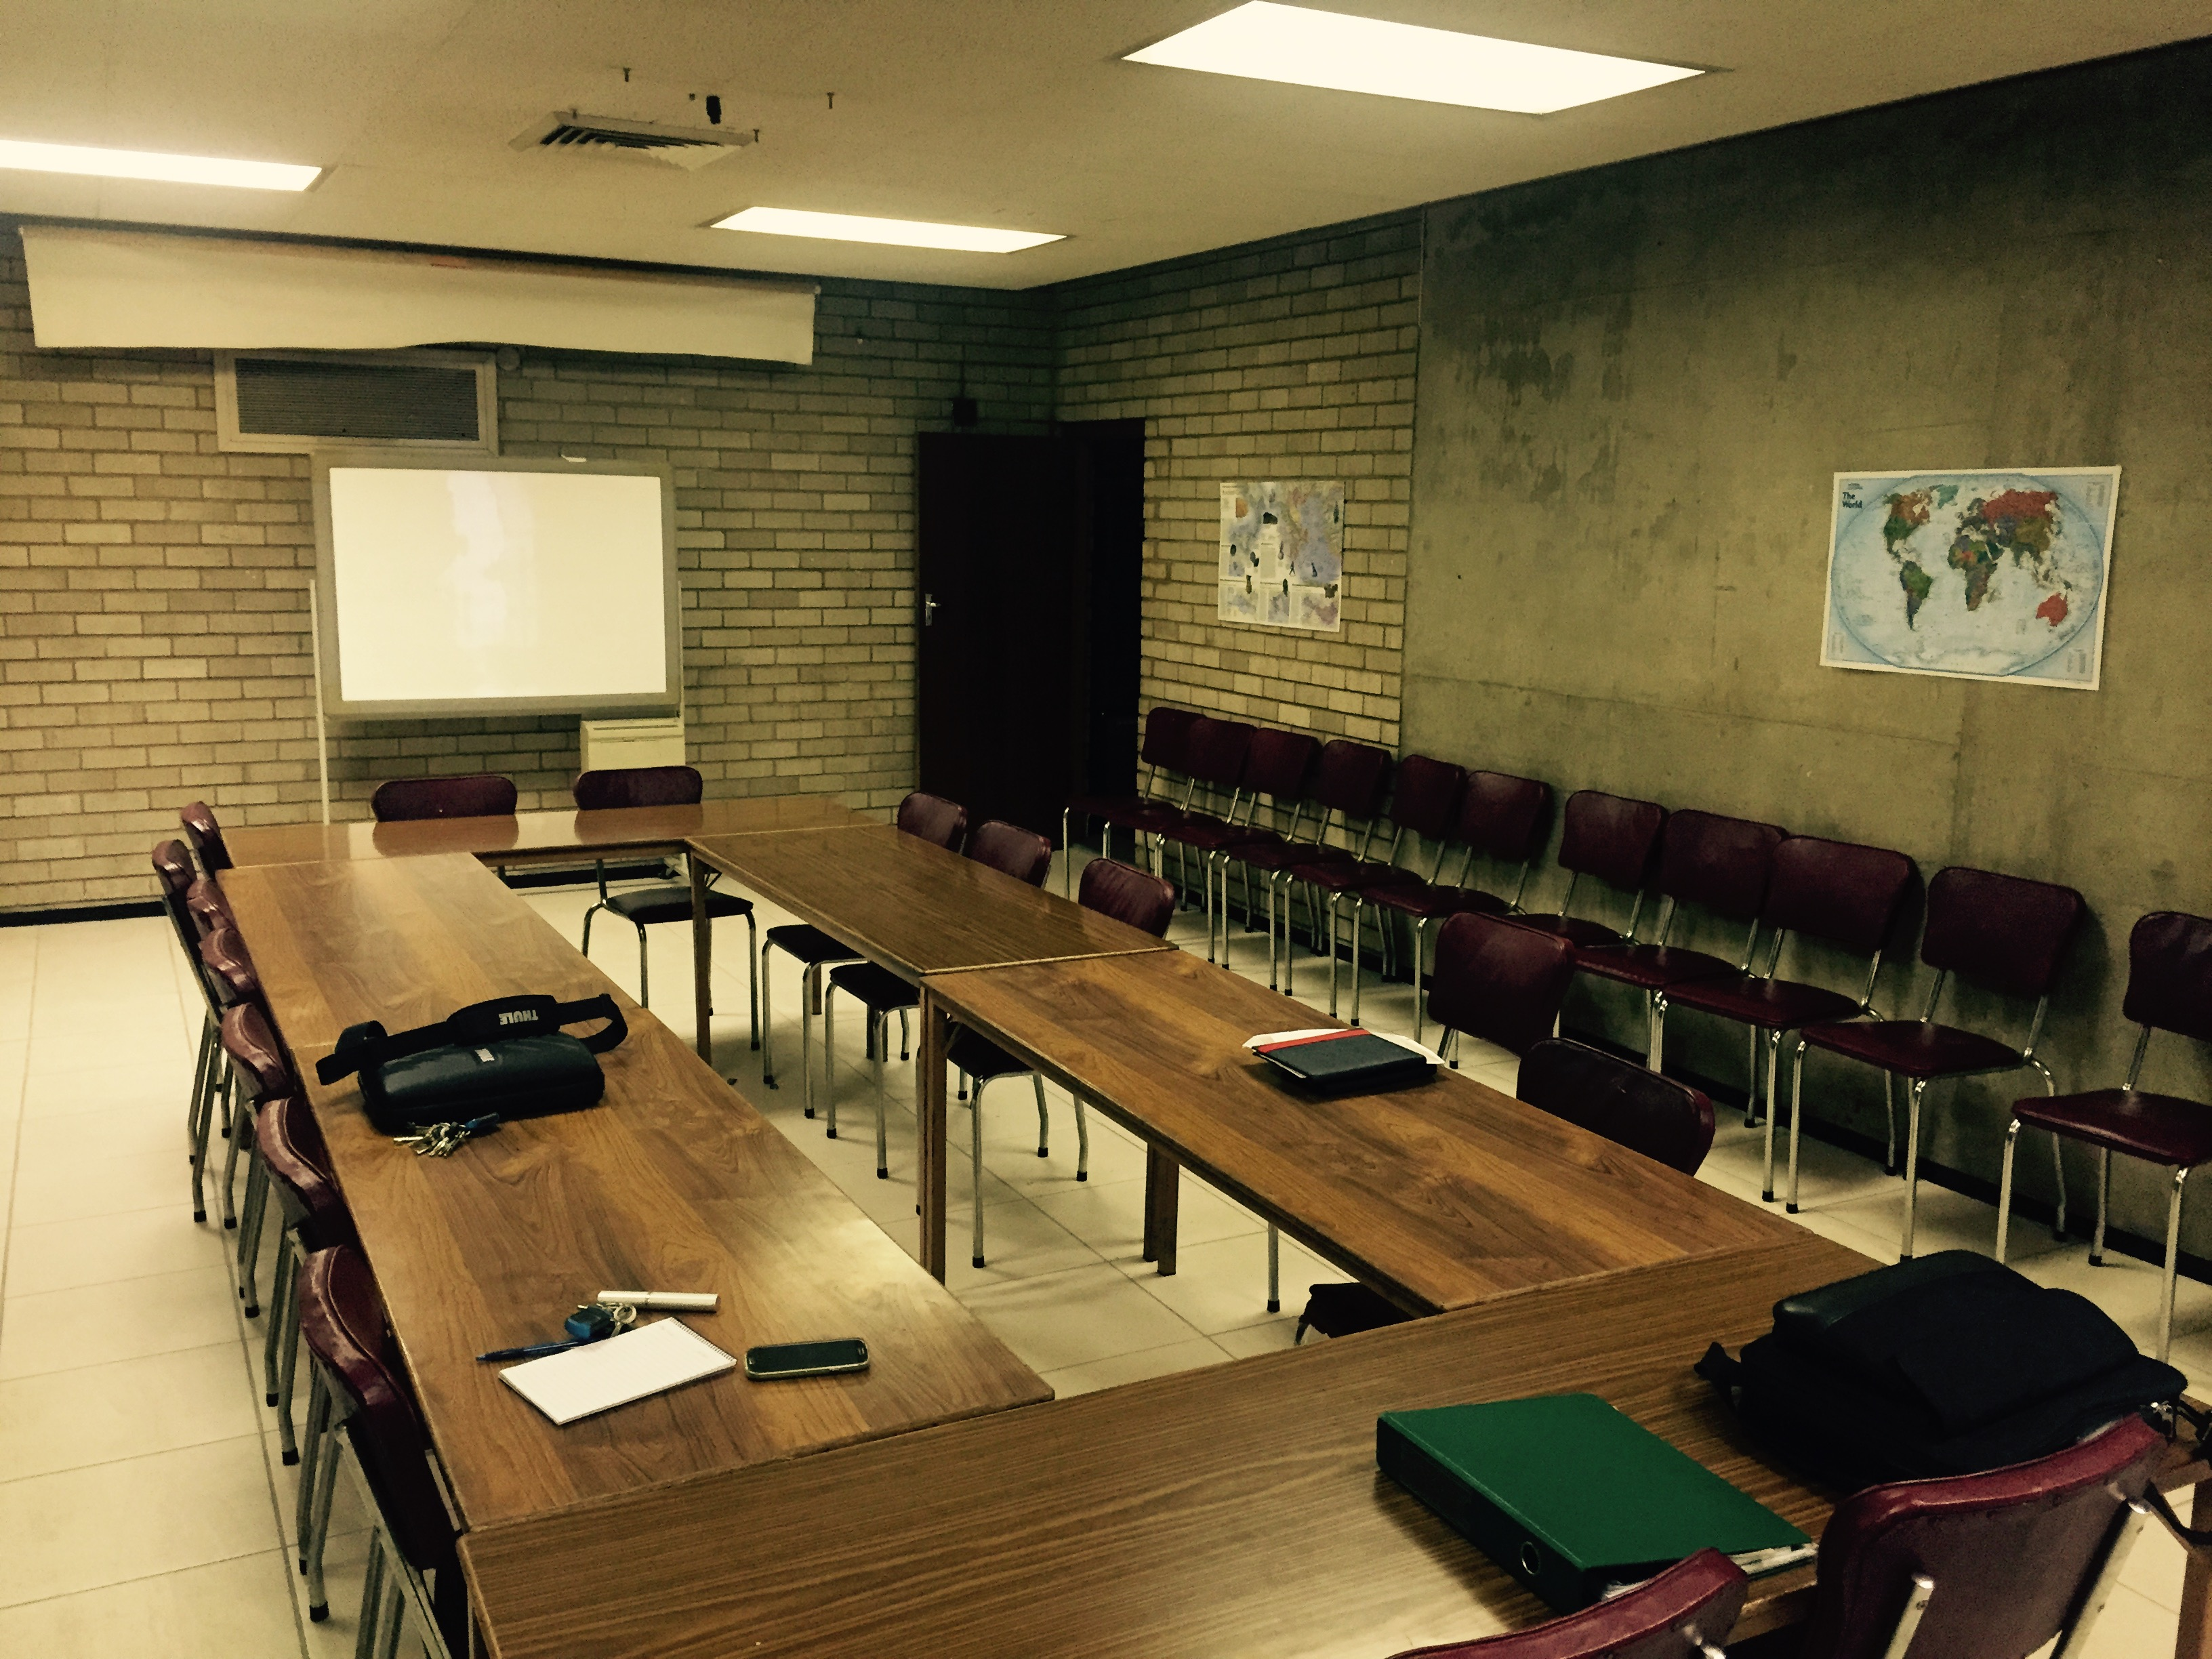 Mukhanyo Theological College Is Ideally Situated In Johannesburg It Within Walking Distance Of The Gautrain Park Station